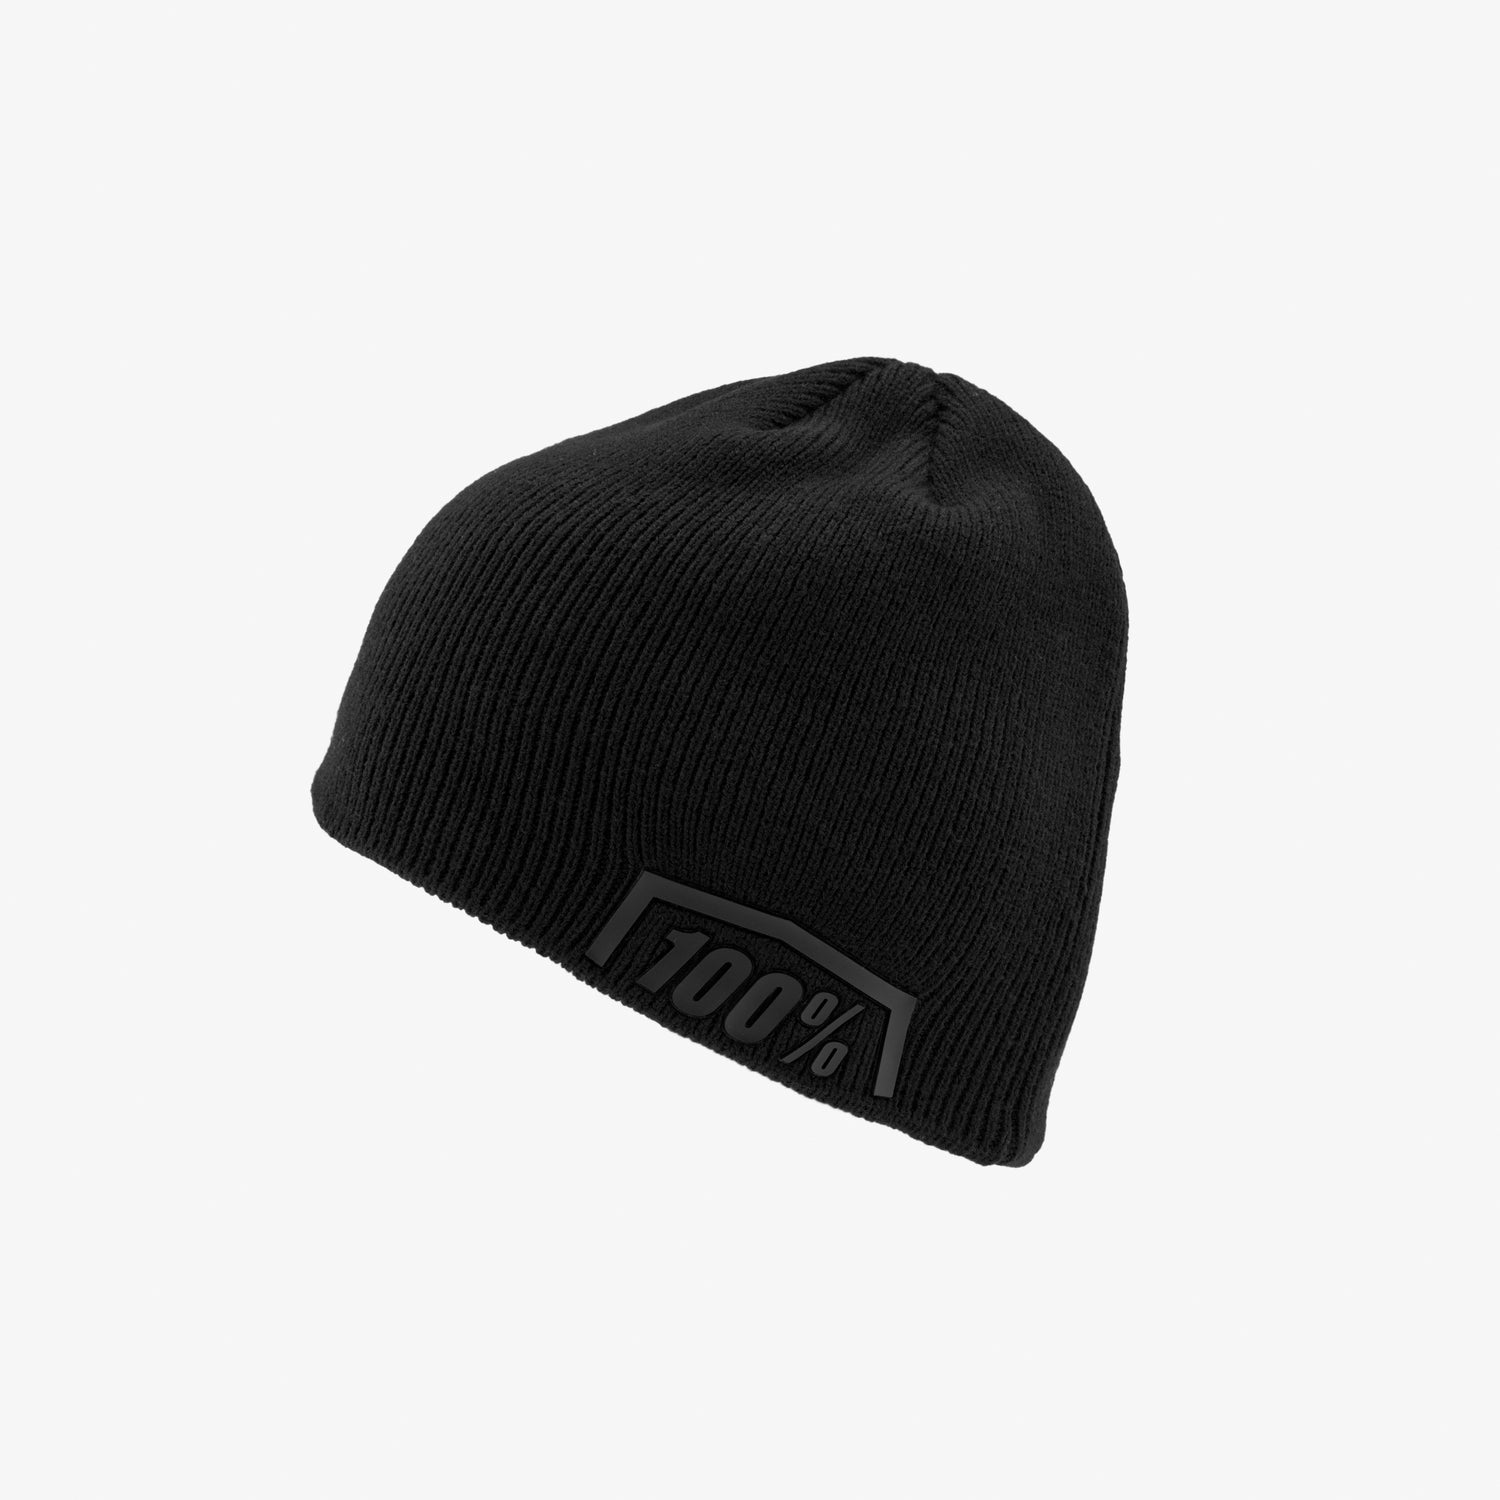 ESSENTIAL Beanie Black/Black